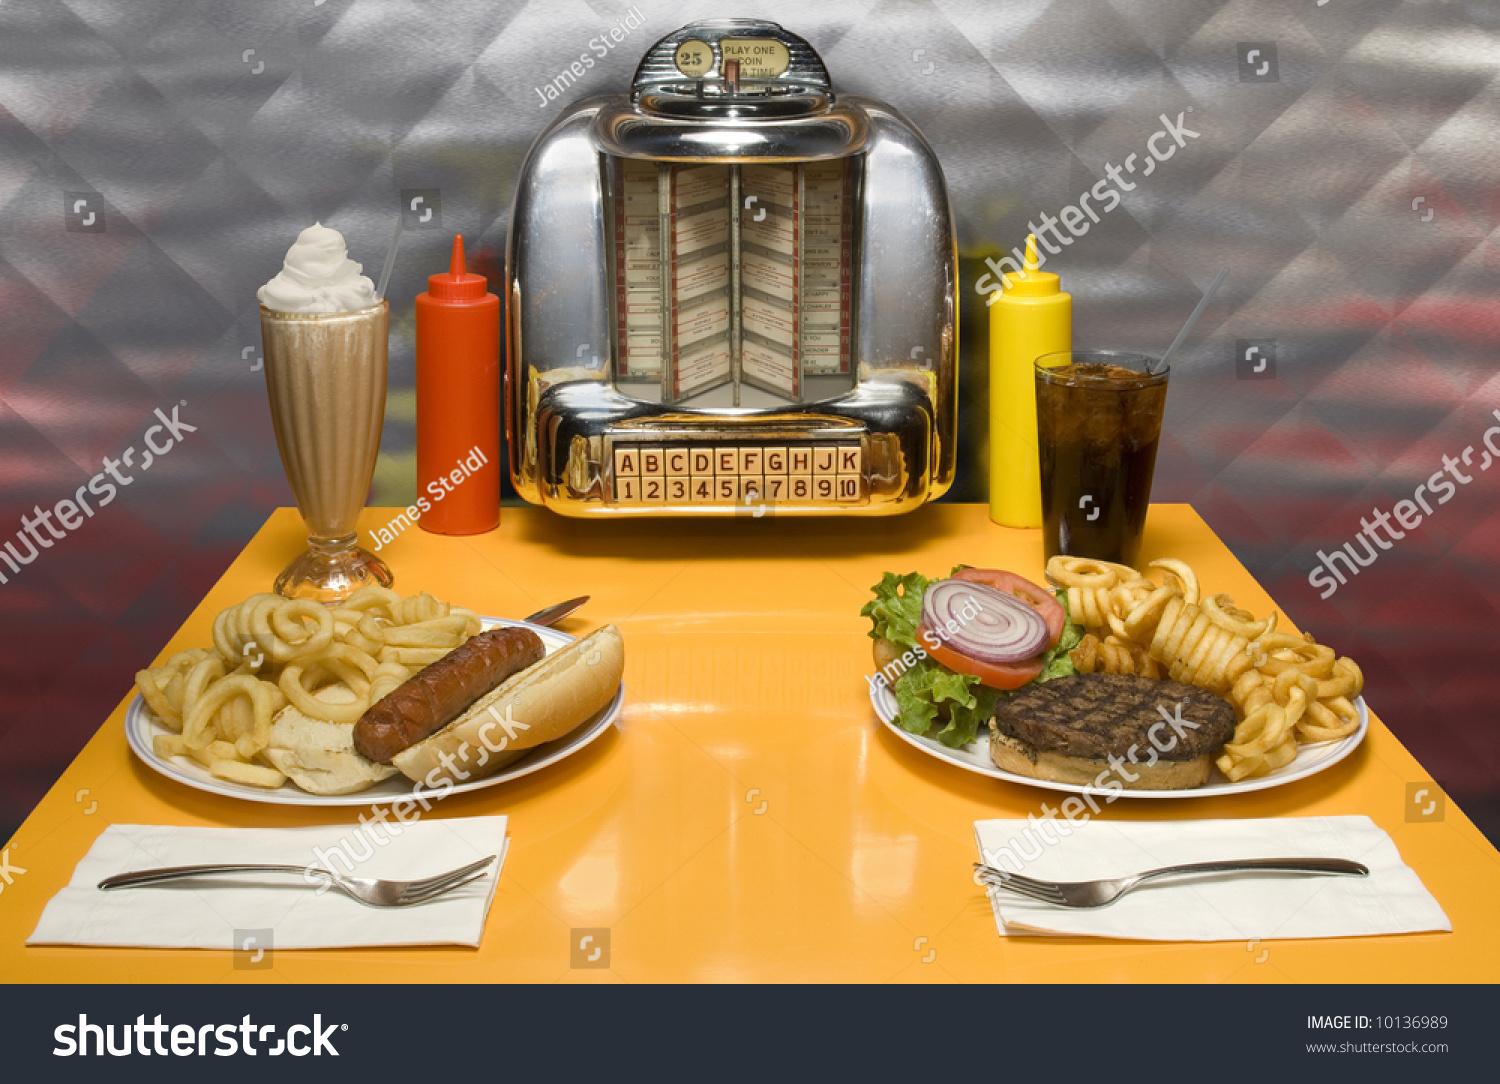 1950s style diner table juke box stock photo 10136989 shutterstock. Black Bedroom Furniture Sets. Home Design Ideas